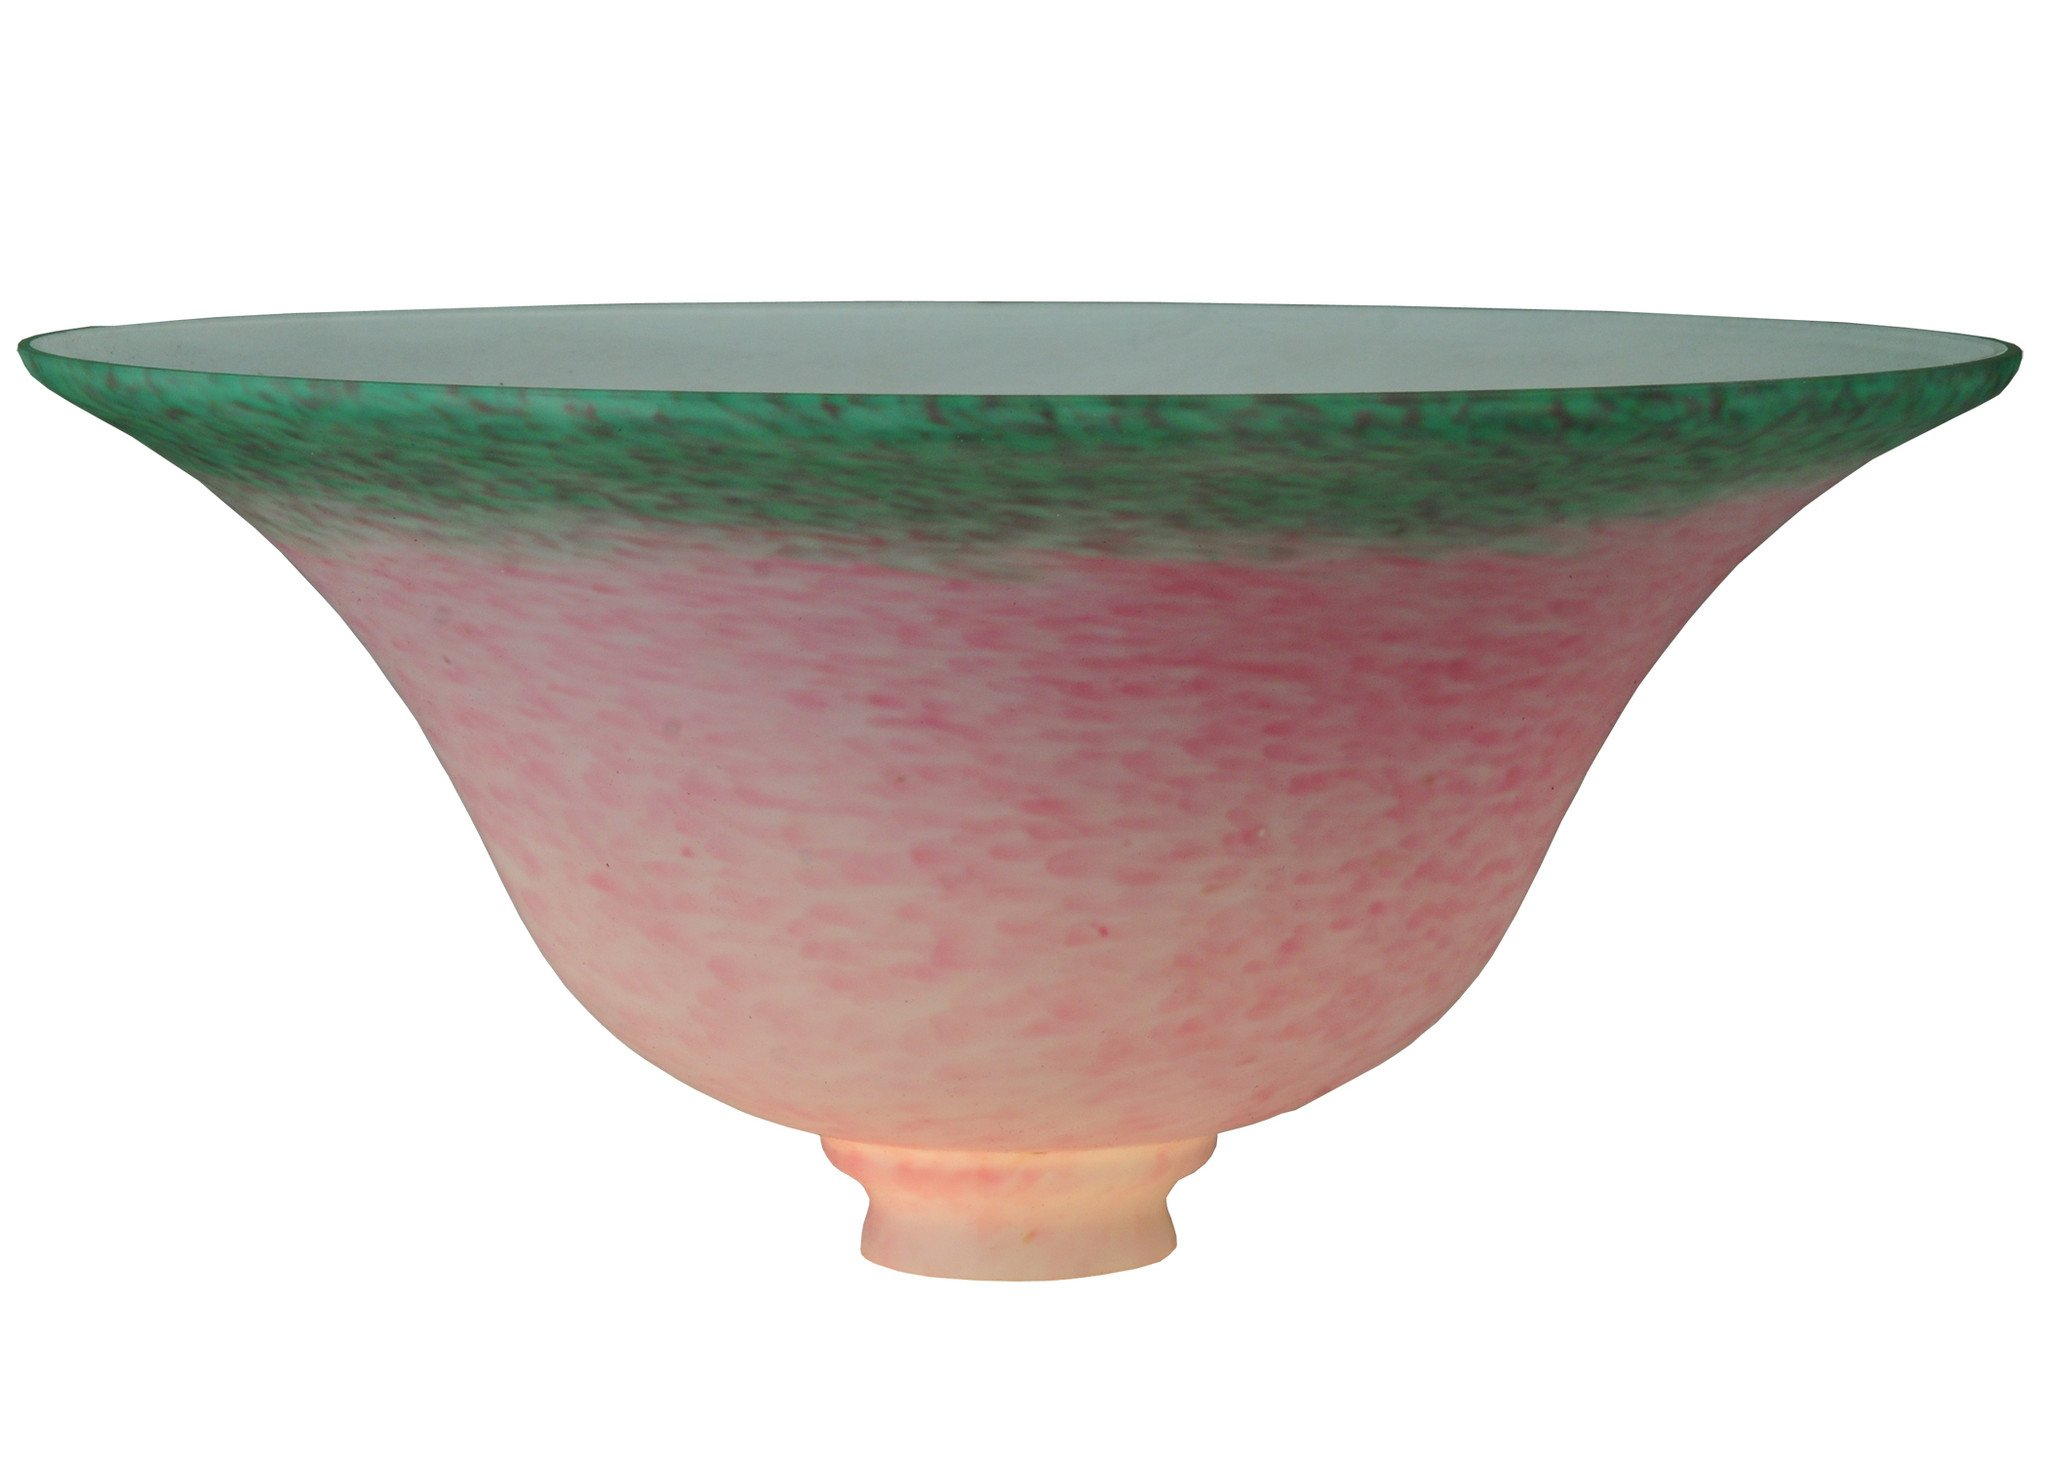 13 Inch Bell Pdv Pk/Gr Product Application Lily Tulip and Pate-de-Verre by Meyda